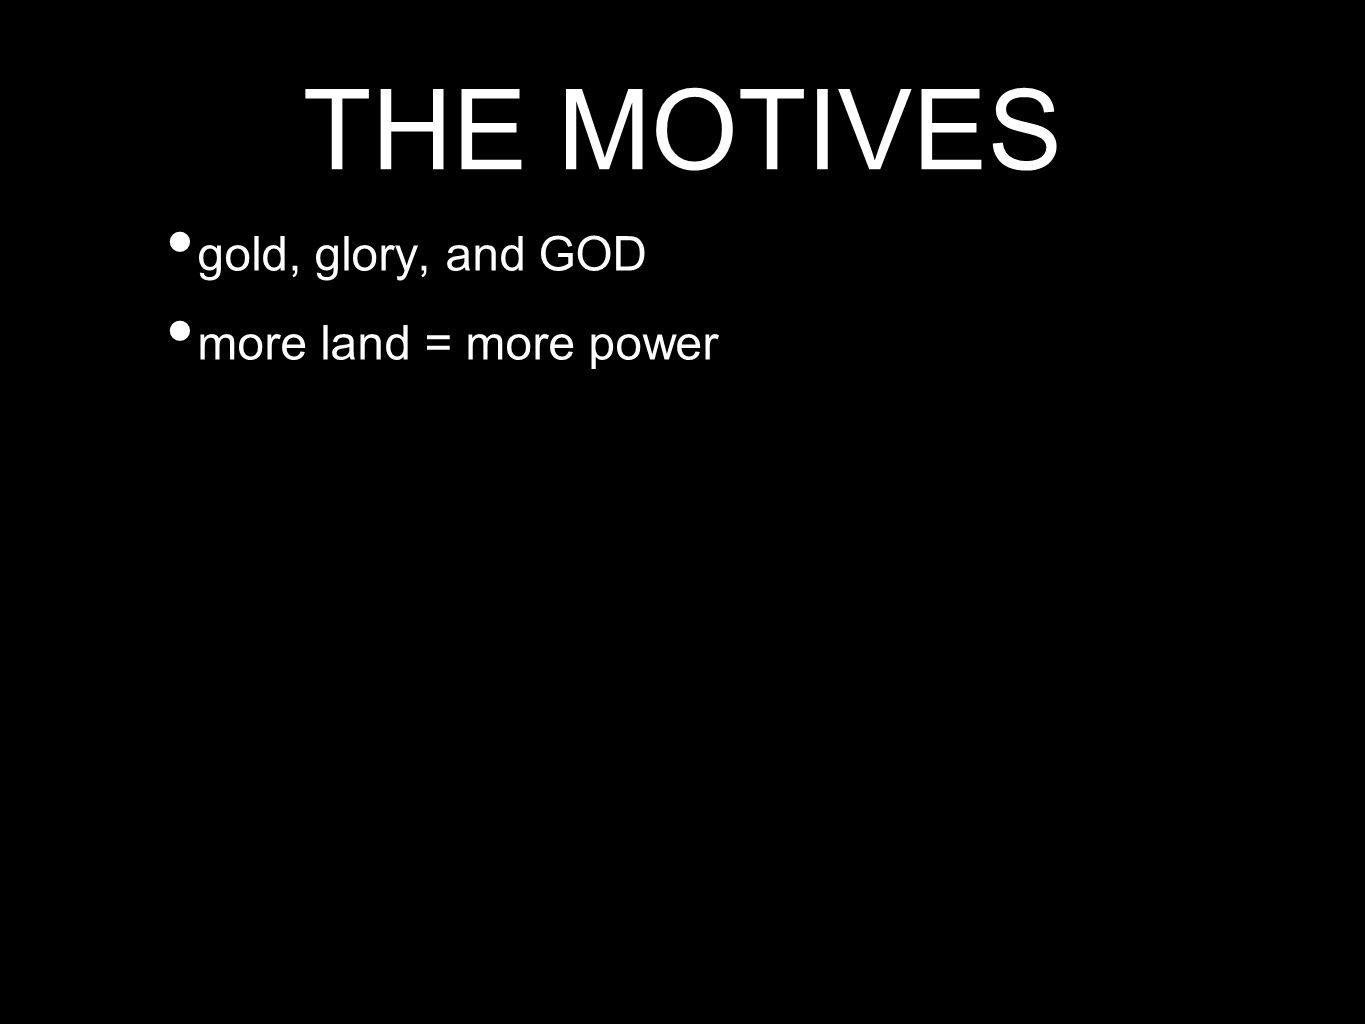 THE MOTIVES gold, glory, and GOD more land = more power